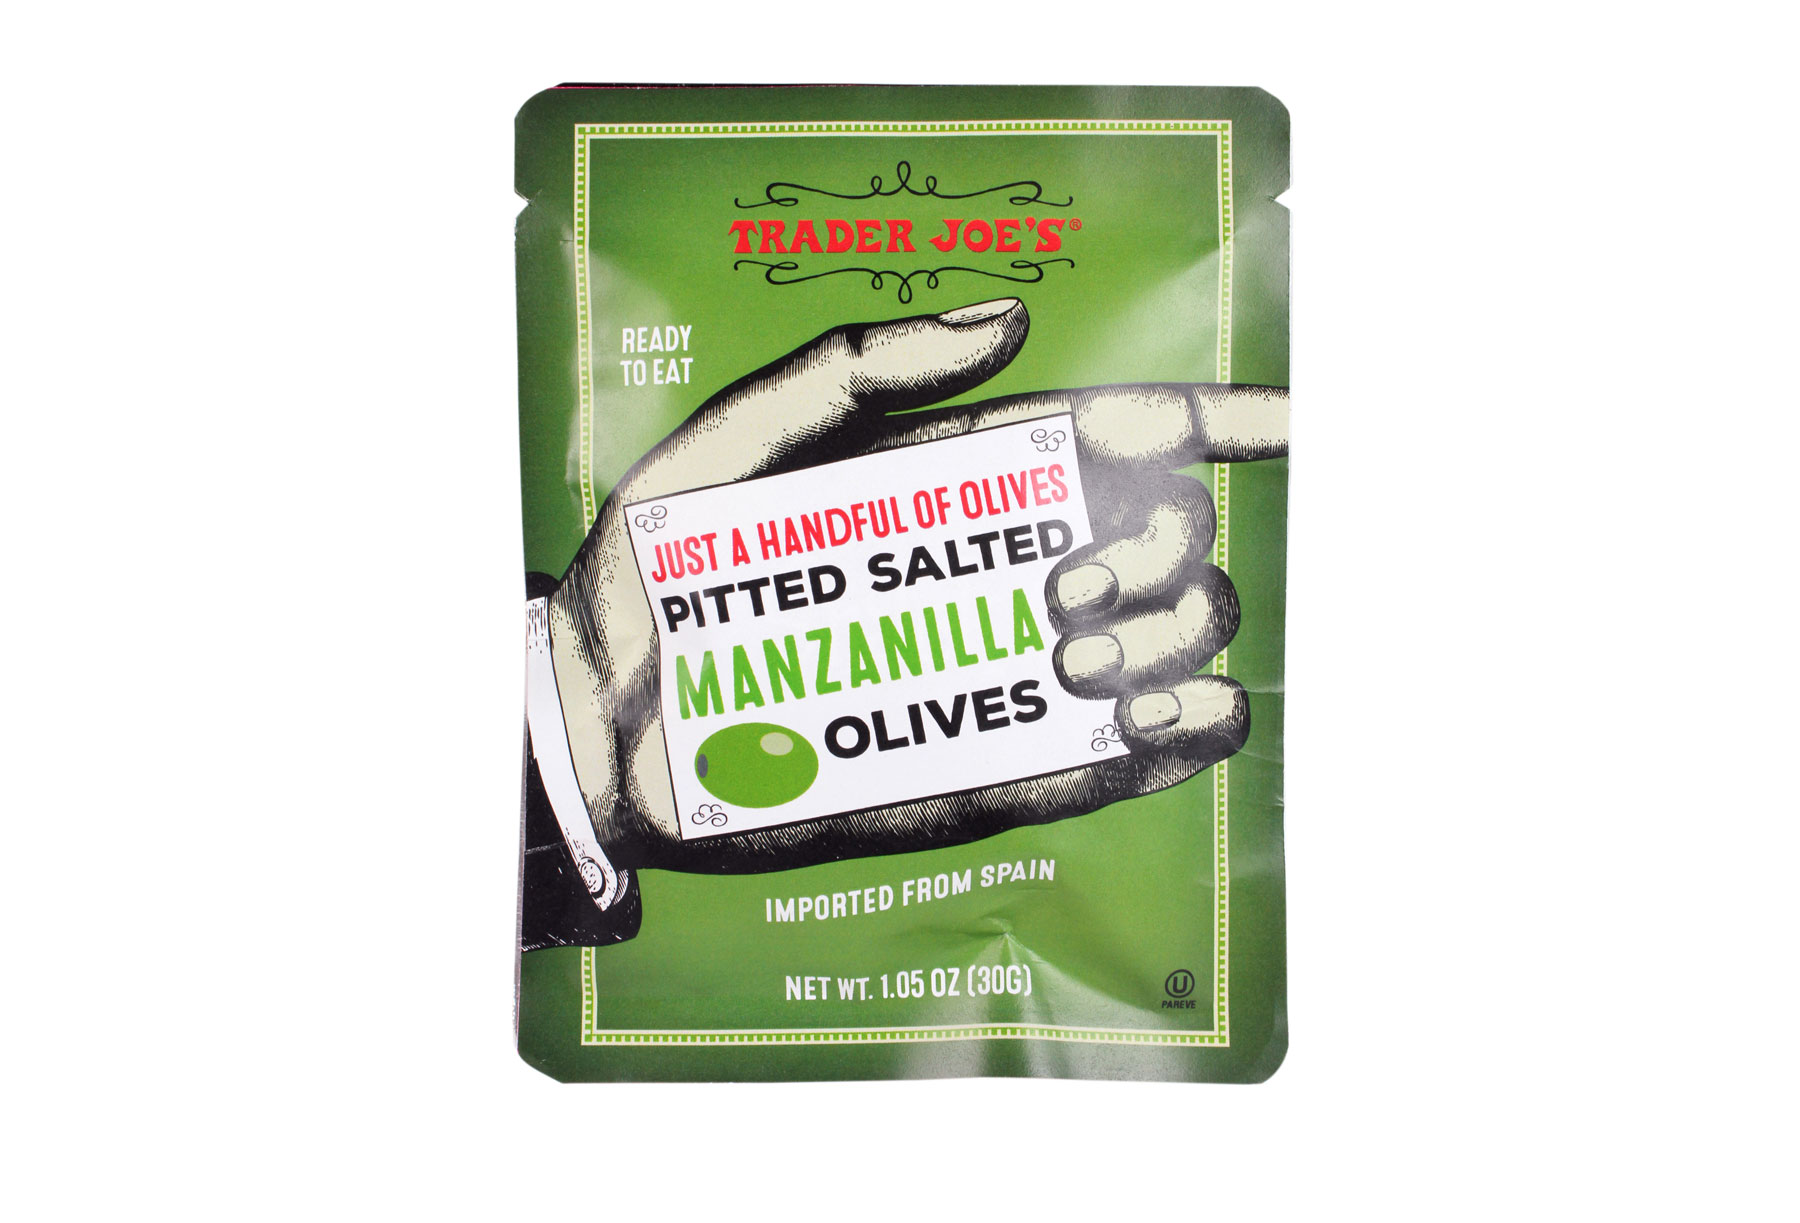 Trader Joe's products/editors' picks - Trader Joe's Just a Handful of Olives Pitted Salted Manzanilla Olives